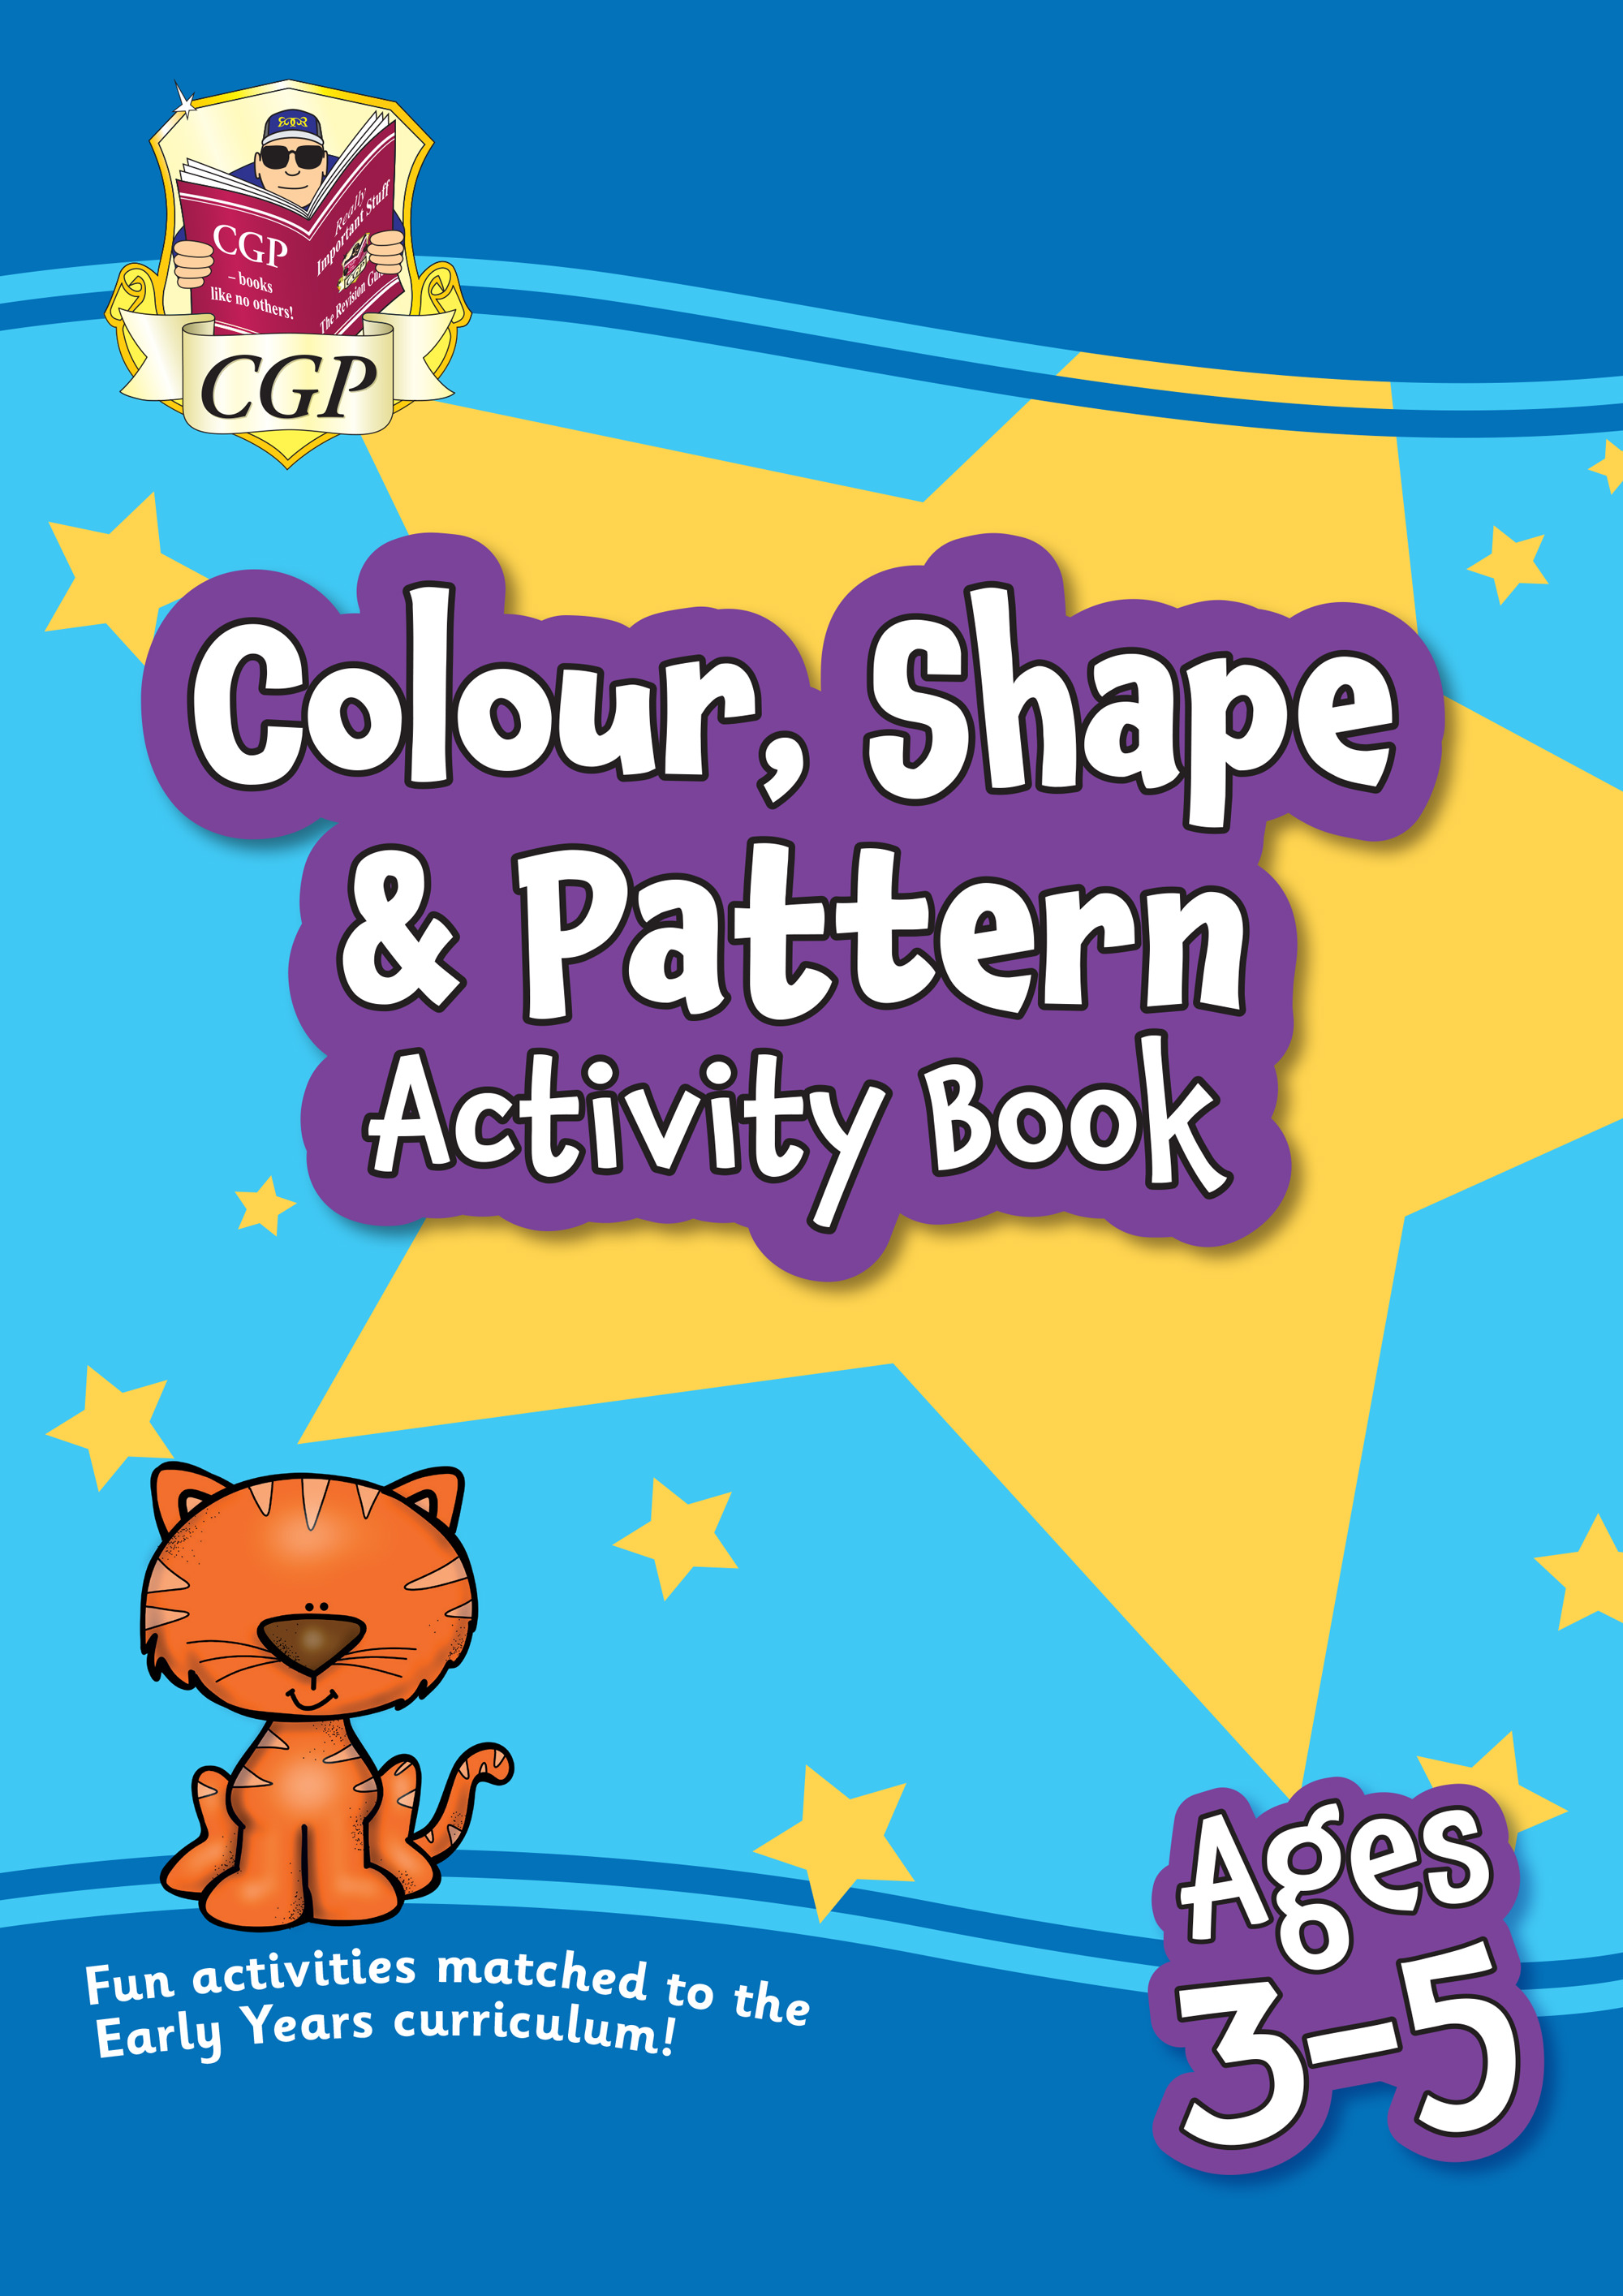 MPFPRQ01 - New Colour, Shape & Pattern Maths Home Learning Activity Book for Ages 3-5